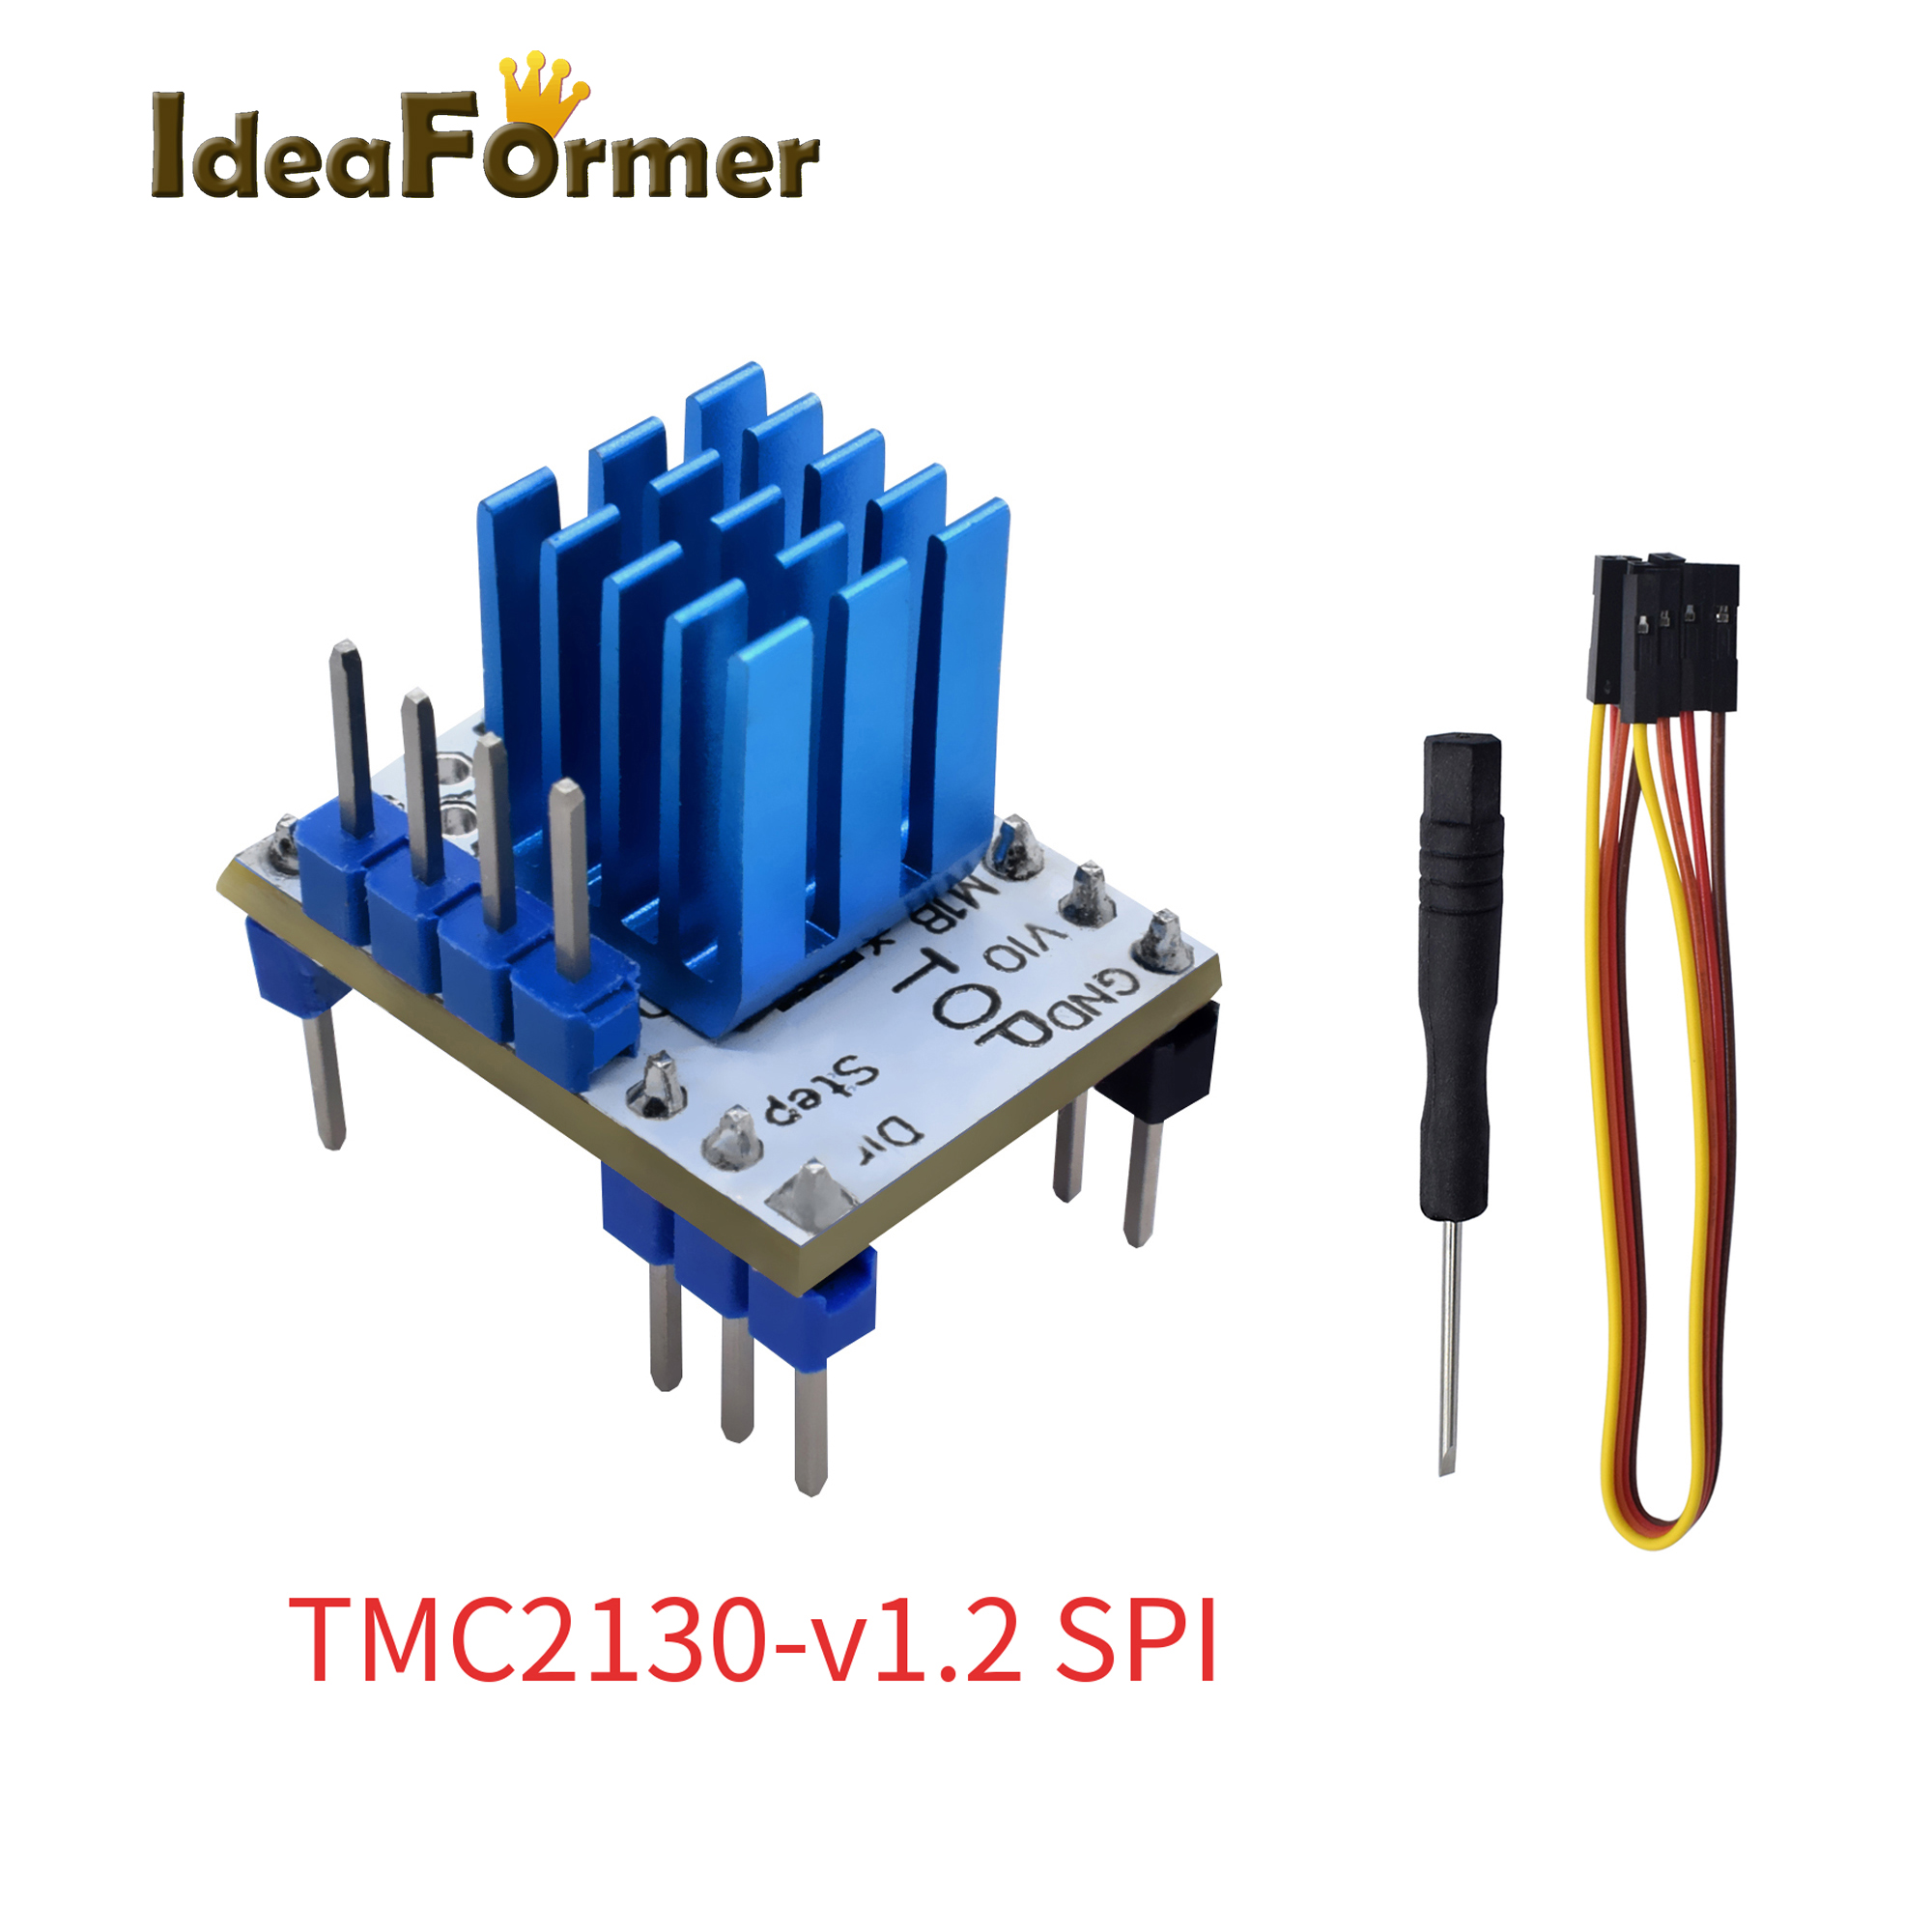 5 Pcs TMC2130 V1 1 TMC2130 V1 2 SPI Stepper Motor StepStick Silent Driver Excellent Protection Stability For 3D Printer Parts in 3D Printer Parts Accessories from Computer Office